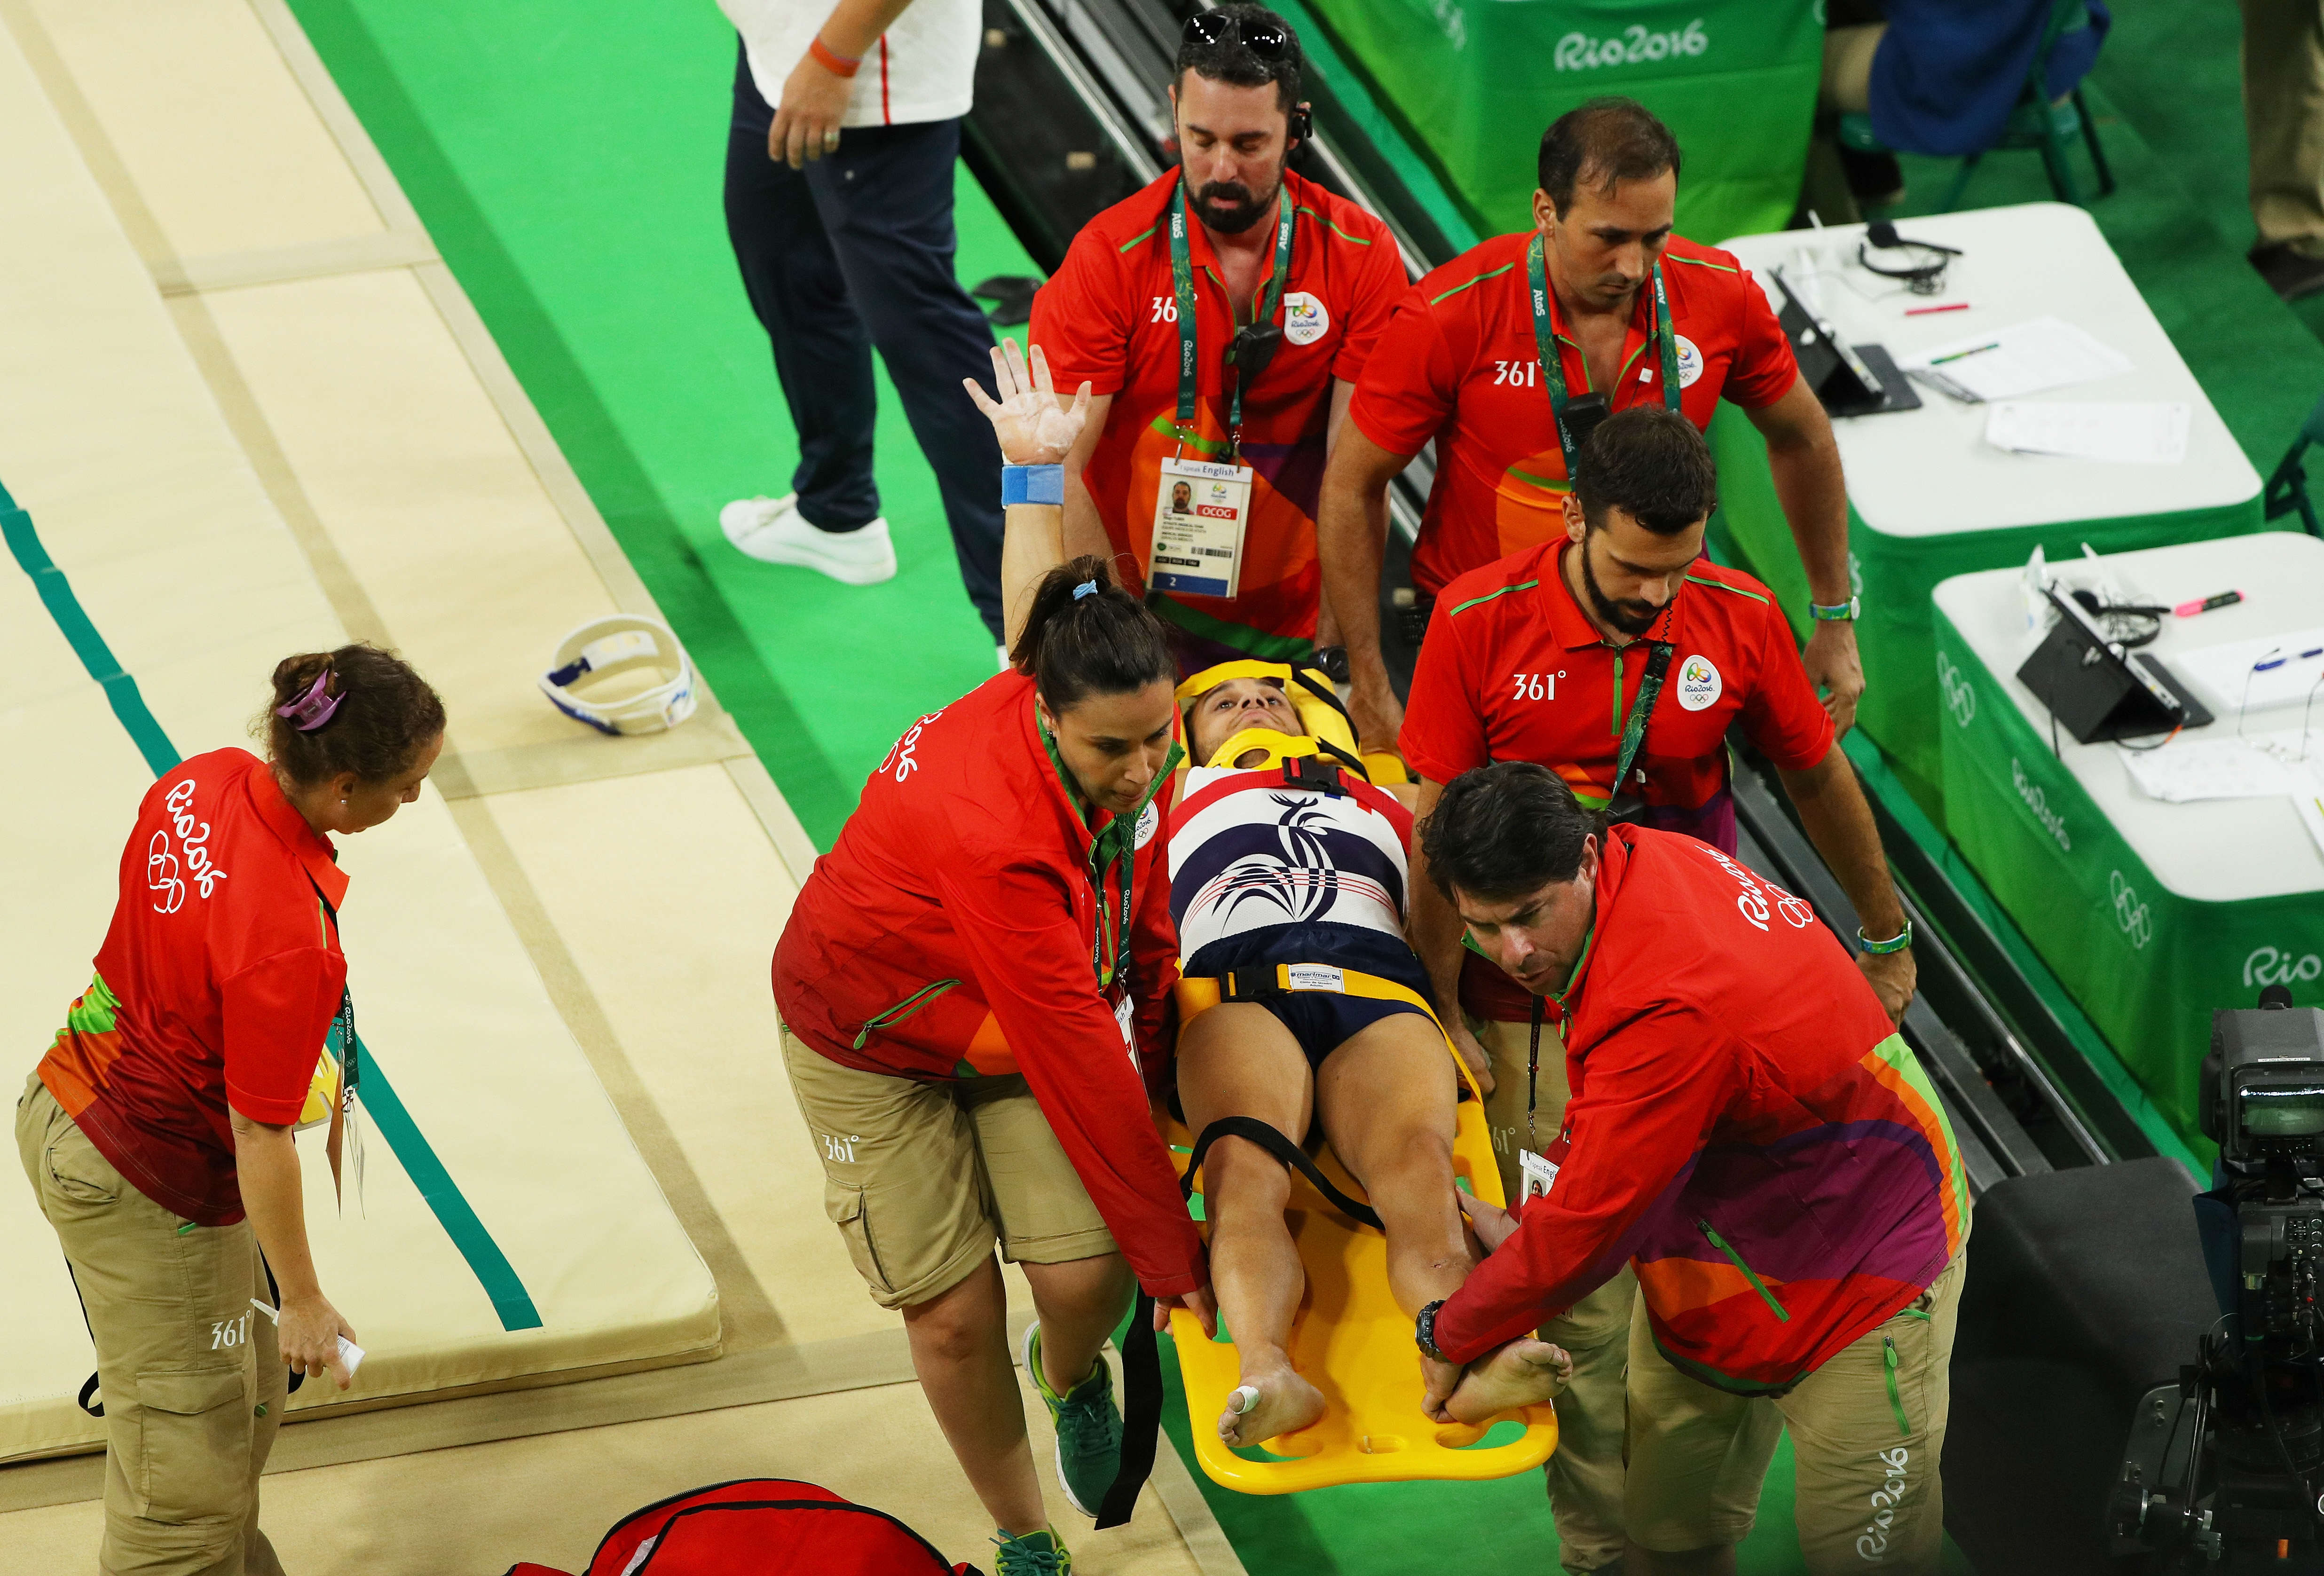 This Horrific Injury Might Be The Olympics Most Brutal Yet leg1 1